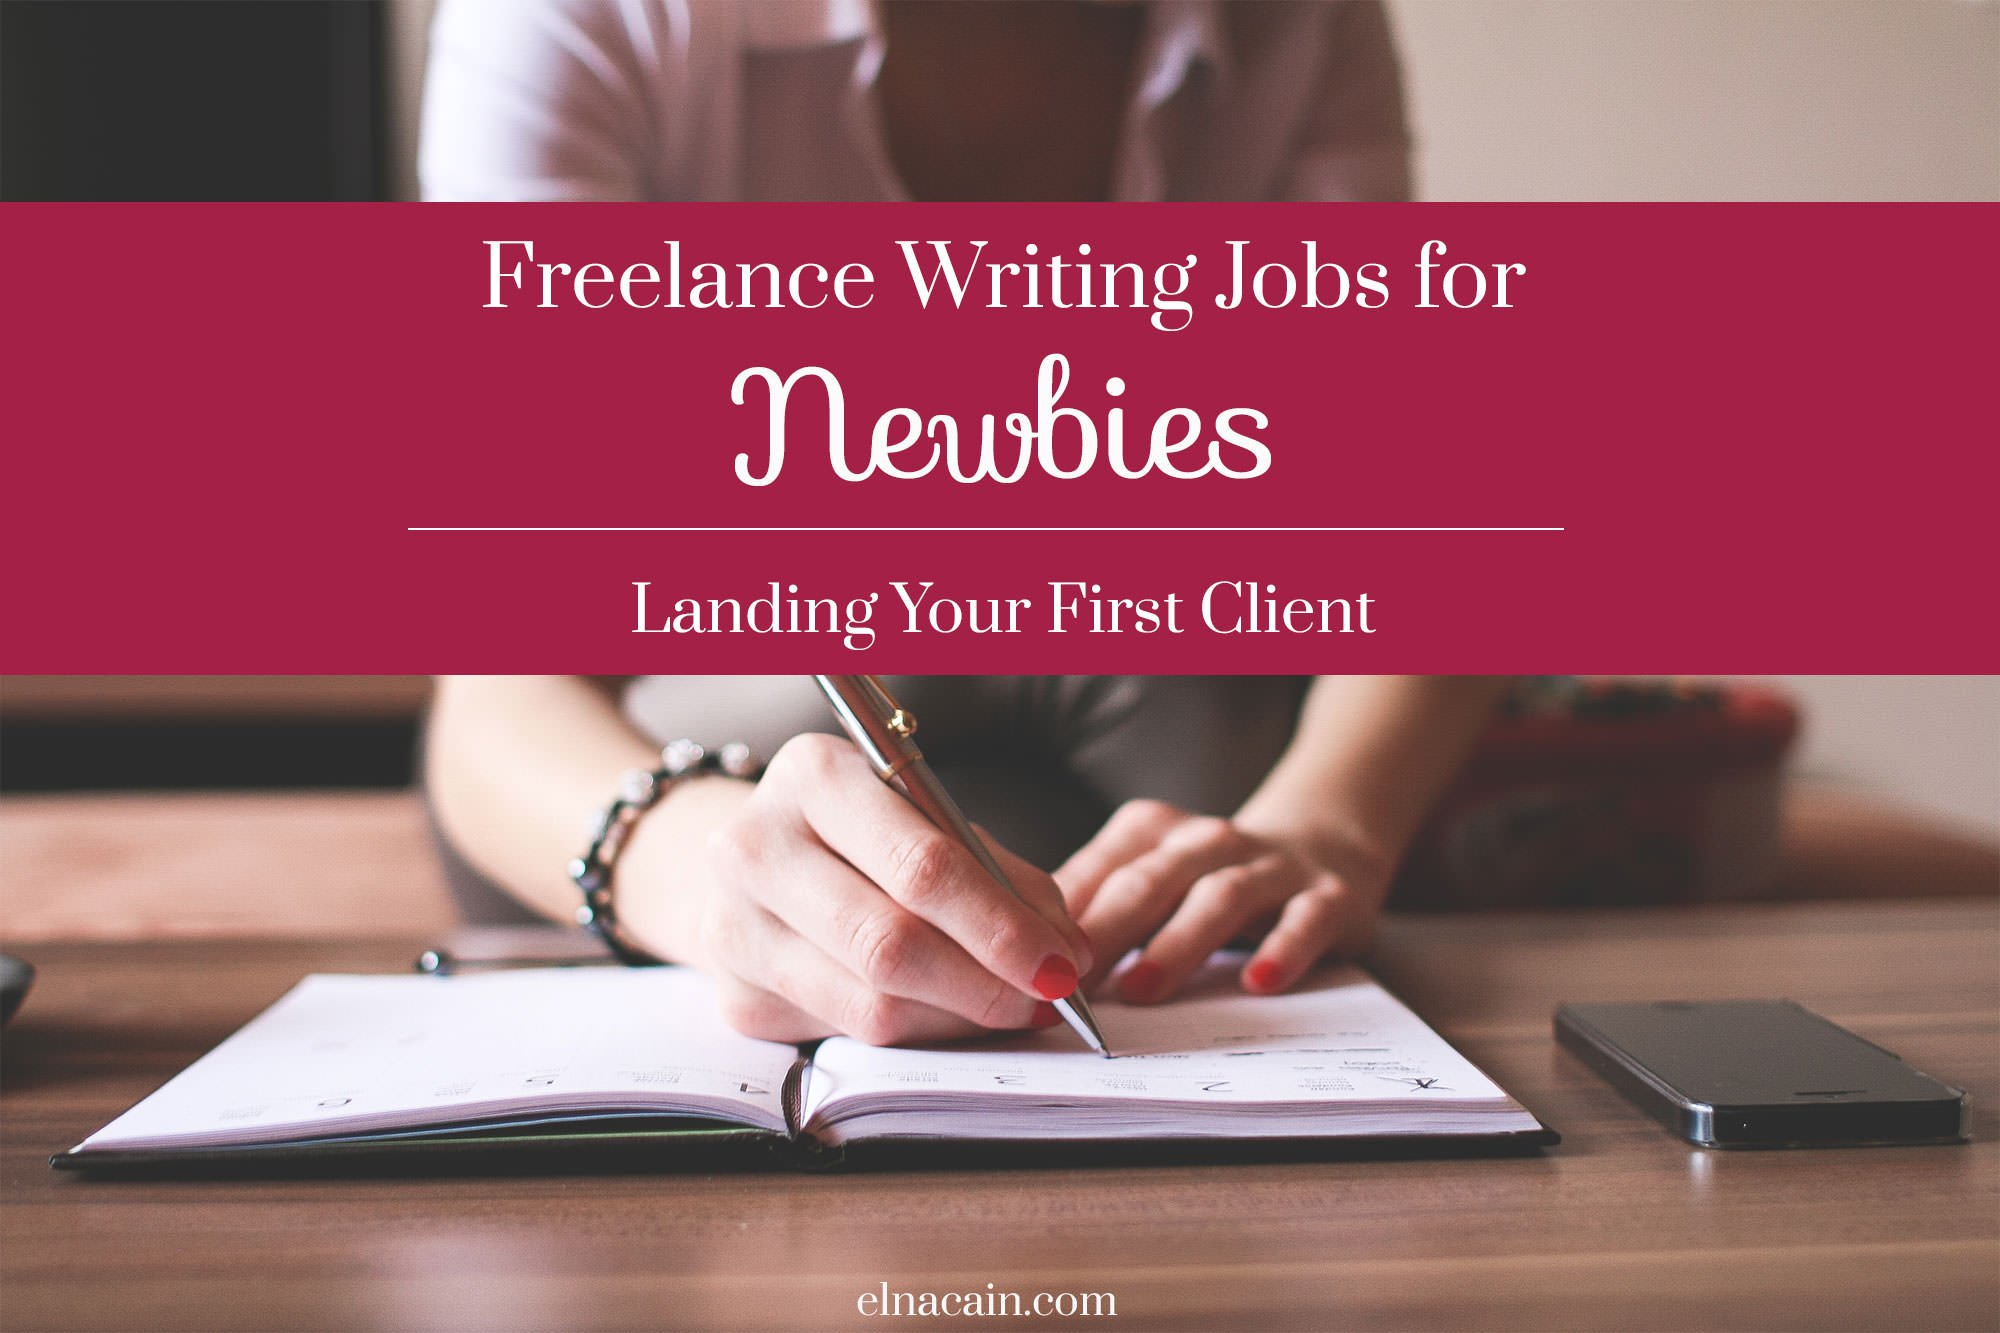 freelance writer Award-winning freelance writer offers professional writing and instructional design services to make your life easier and your business more successful.